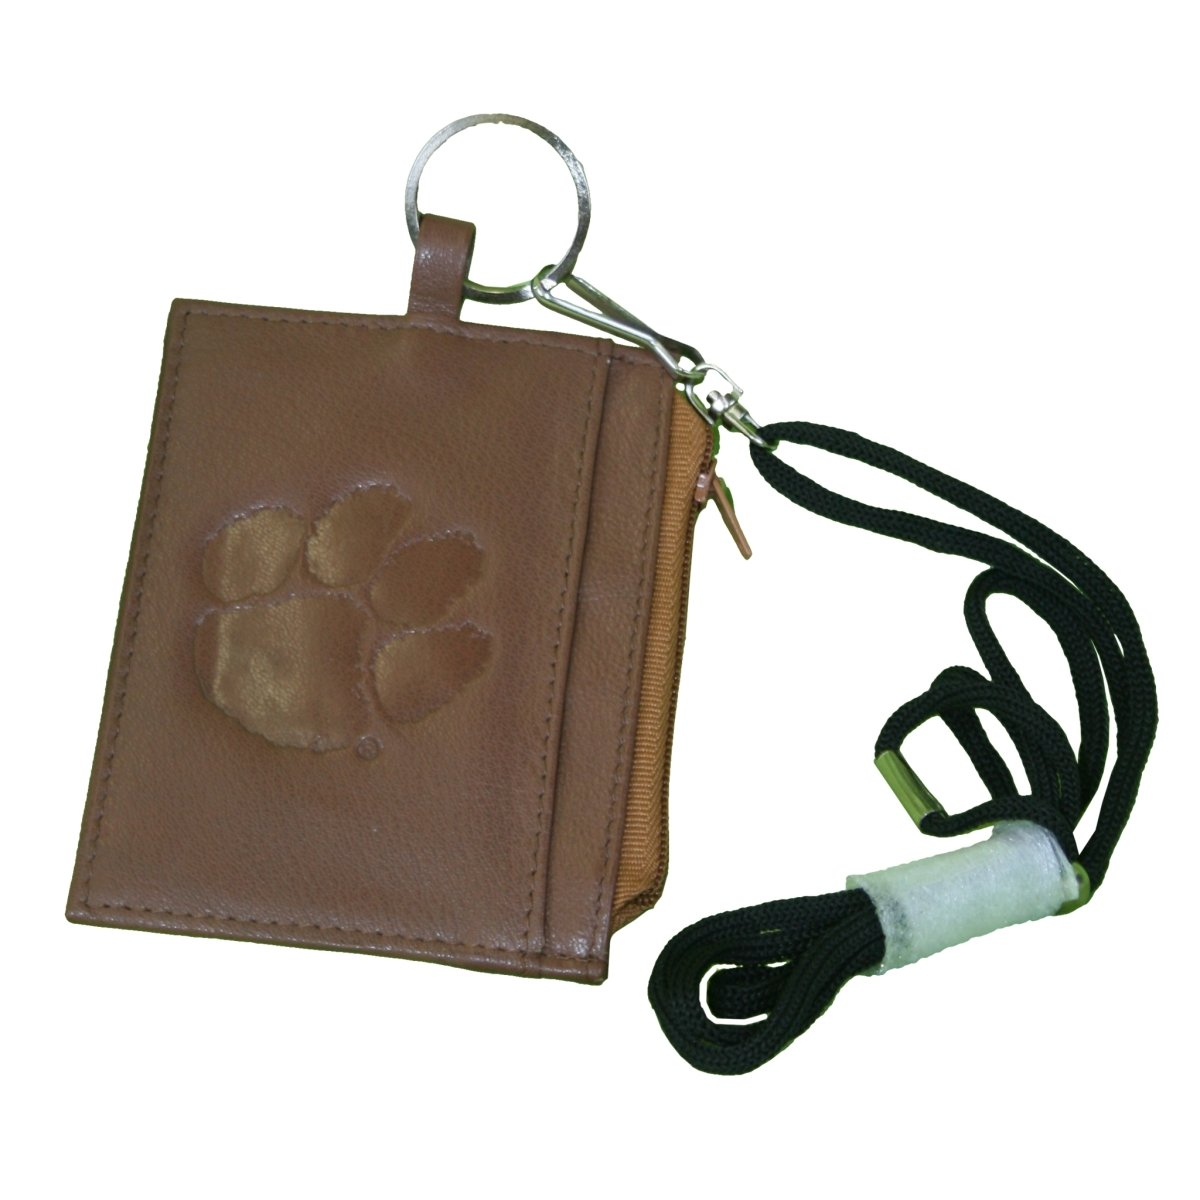 Uniglobe Leathers Clemson Tigers Embossed Wallet and Id Holder With Lanyard - Mr. Knickerbocker